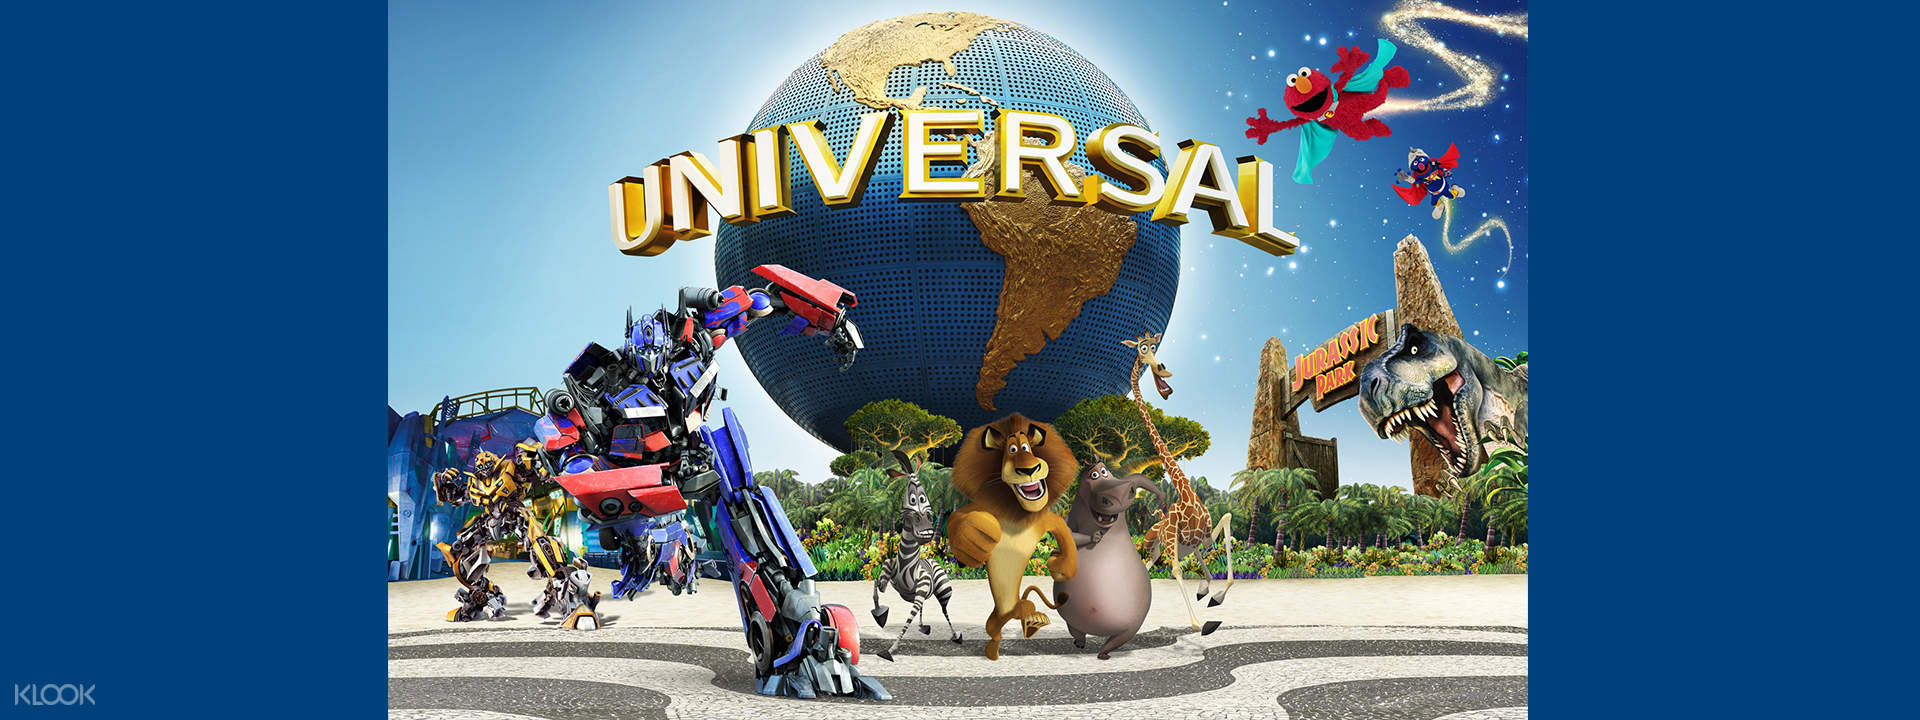 Universal Studios Singapore™ Ticket (1 Day Pass)""